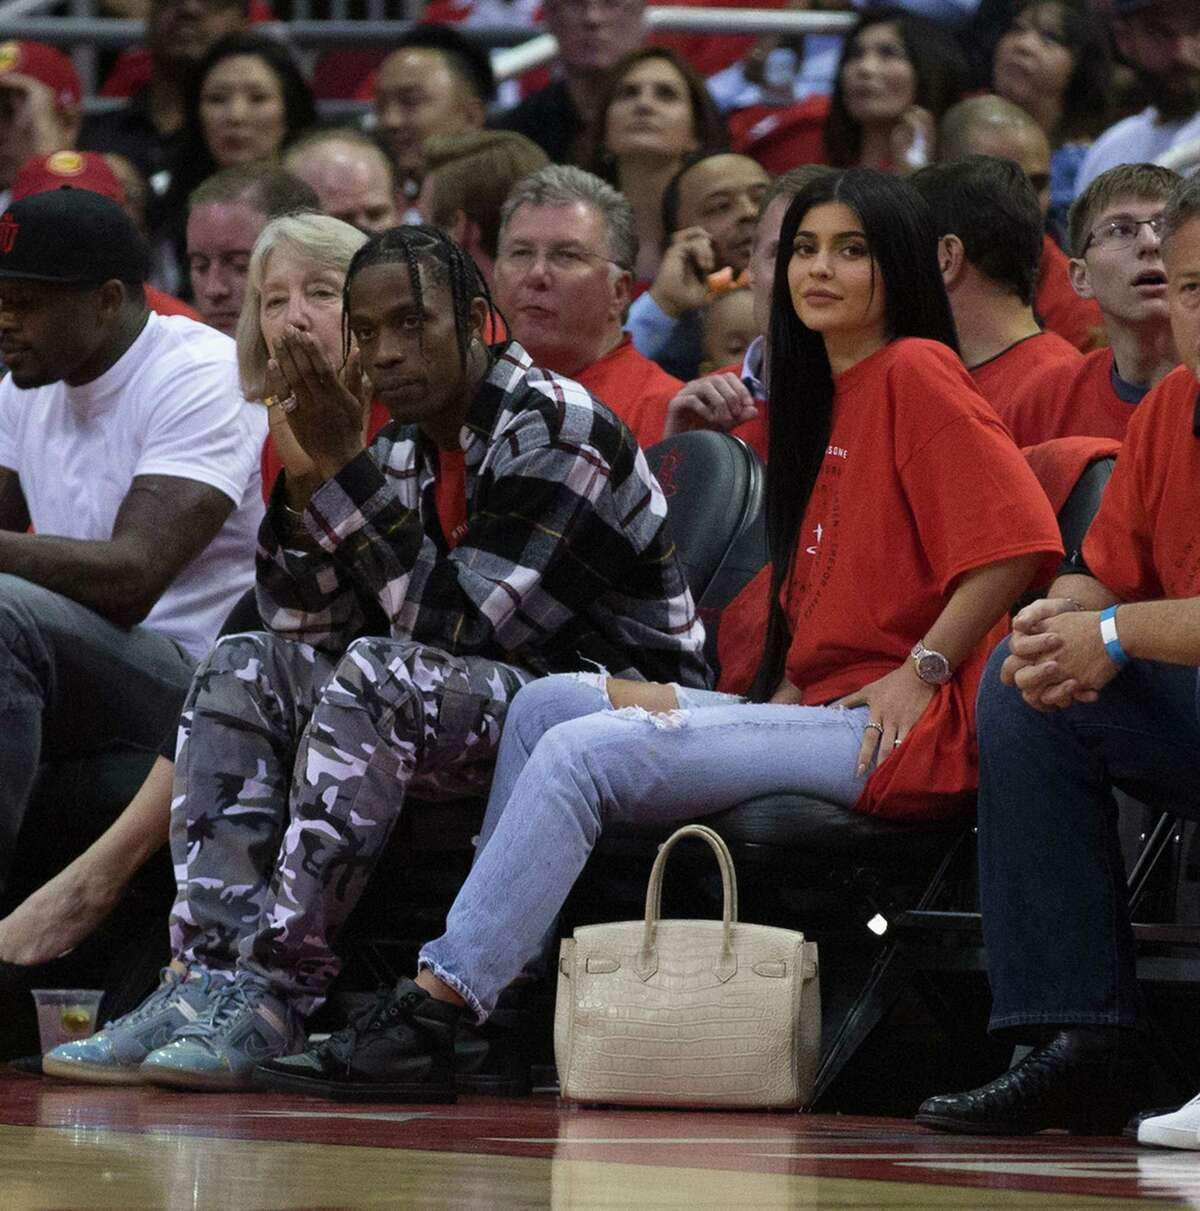 HOUSTON, TX - APRIL 25: Houston rapper Travis Scott and Kylie Jenner watch courtside during Game Five of the Western Conference Quarterfinals game of the 2017 NBA Playoffs at Toyota Center on April 25, 2017 in Houston, Texas. NOTE TO USER: User expressly acknowledges and agrees that, by downloading and/or using this photograph, user is consenting to the terms and conditions of the Getty Images License Agreement.